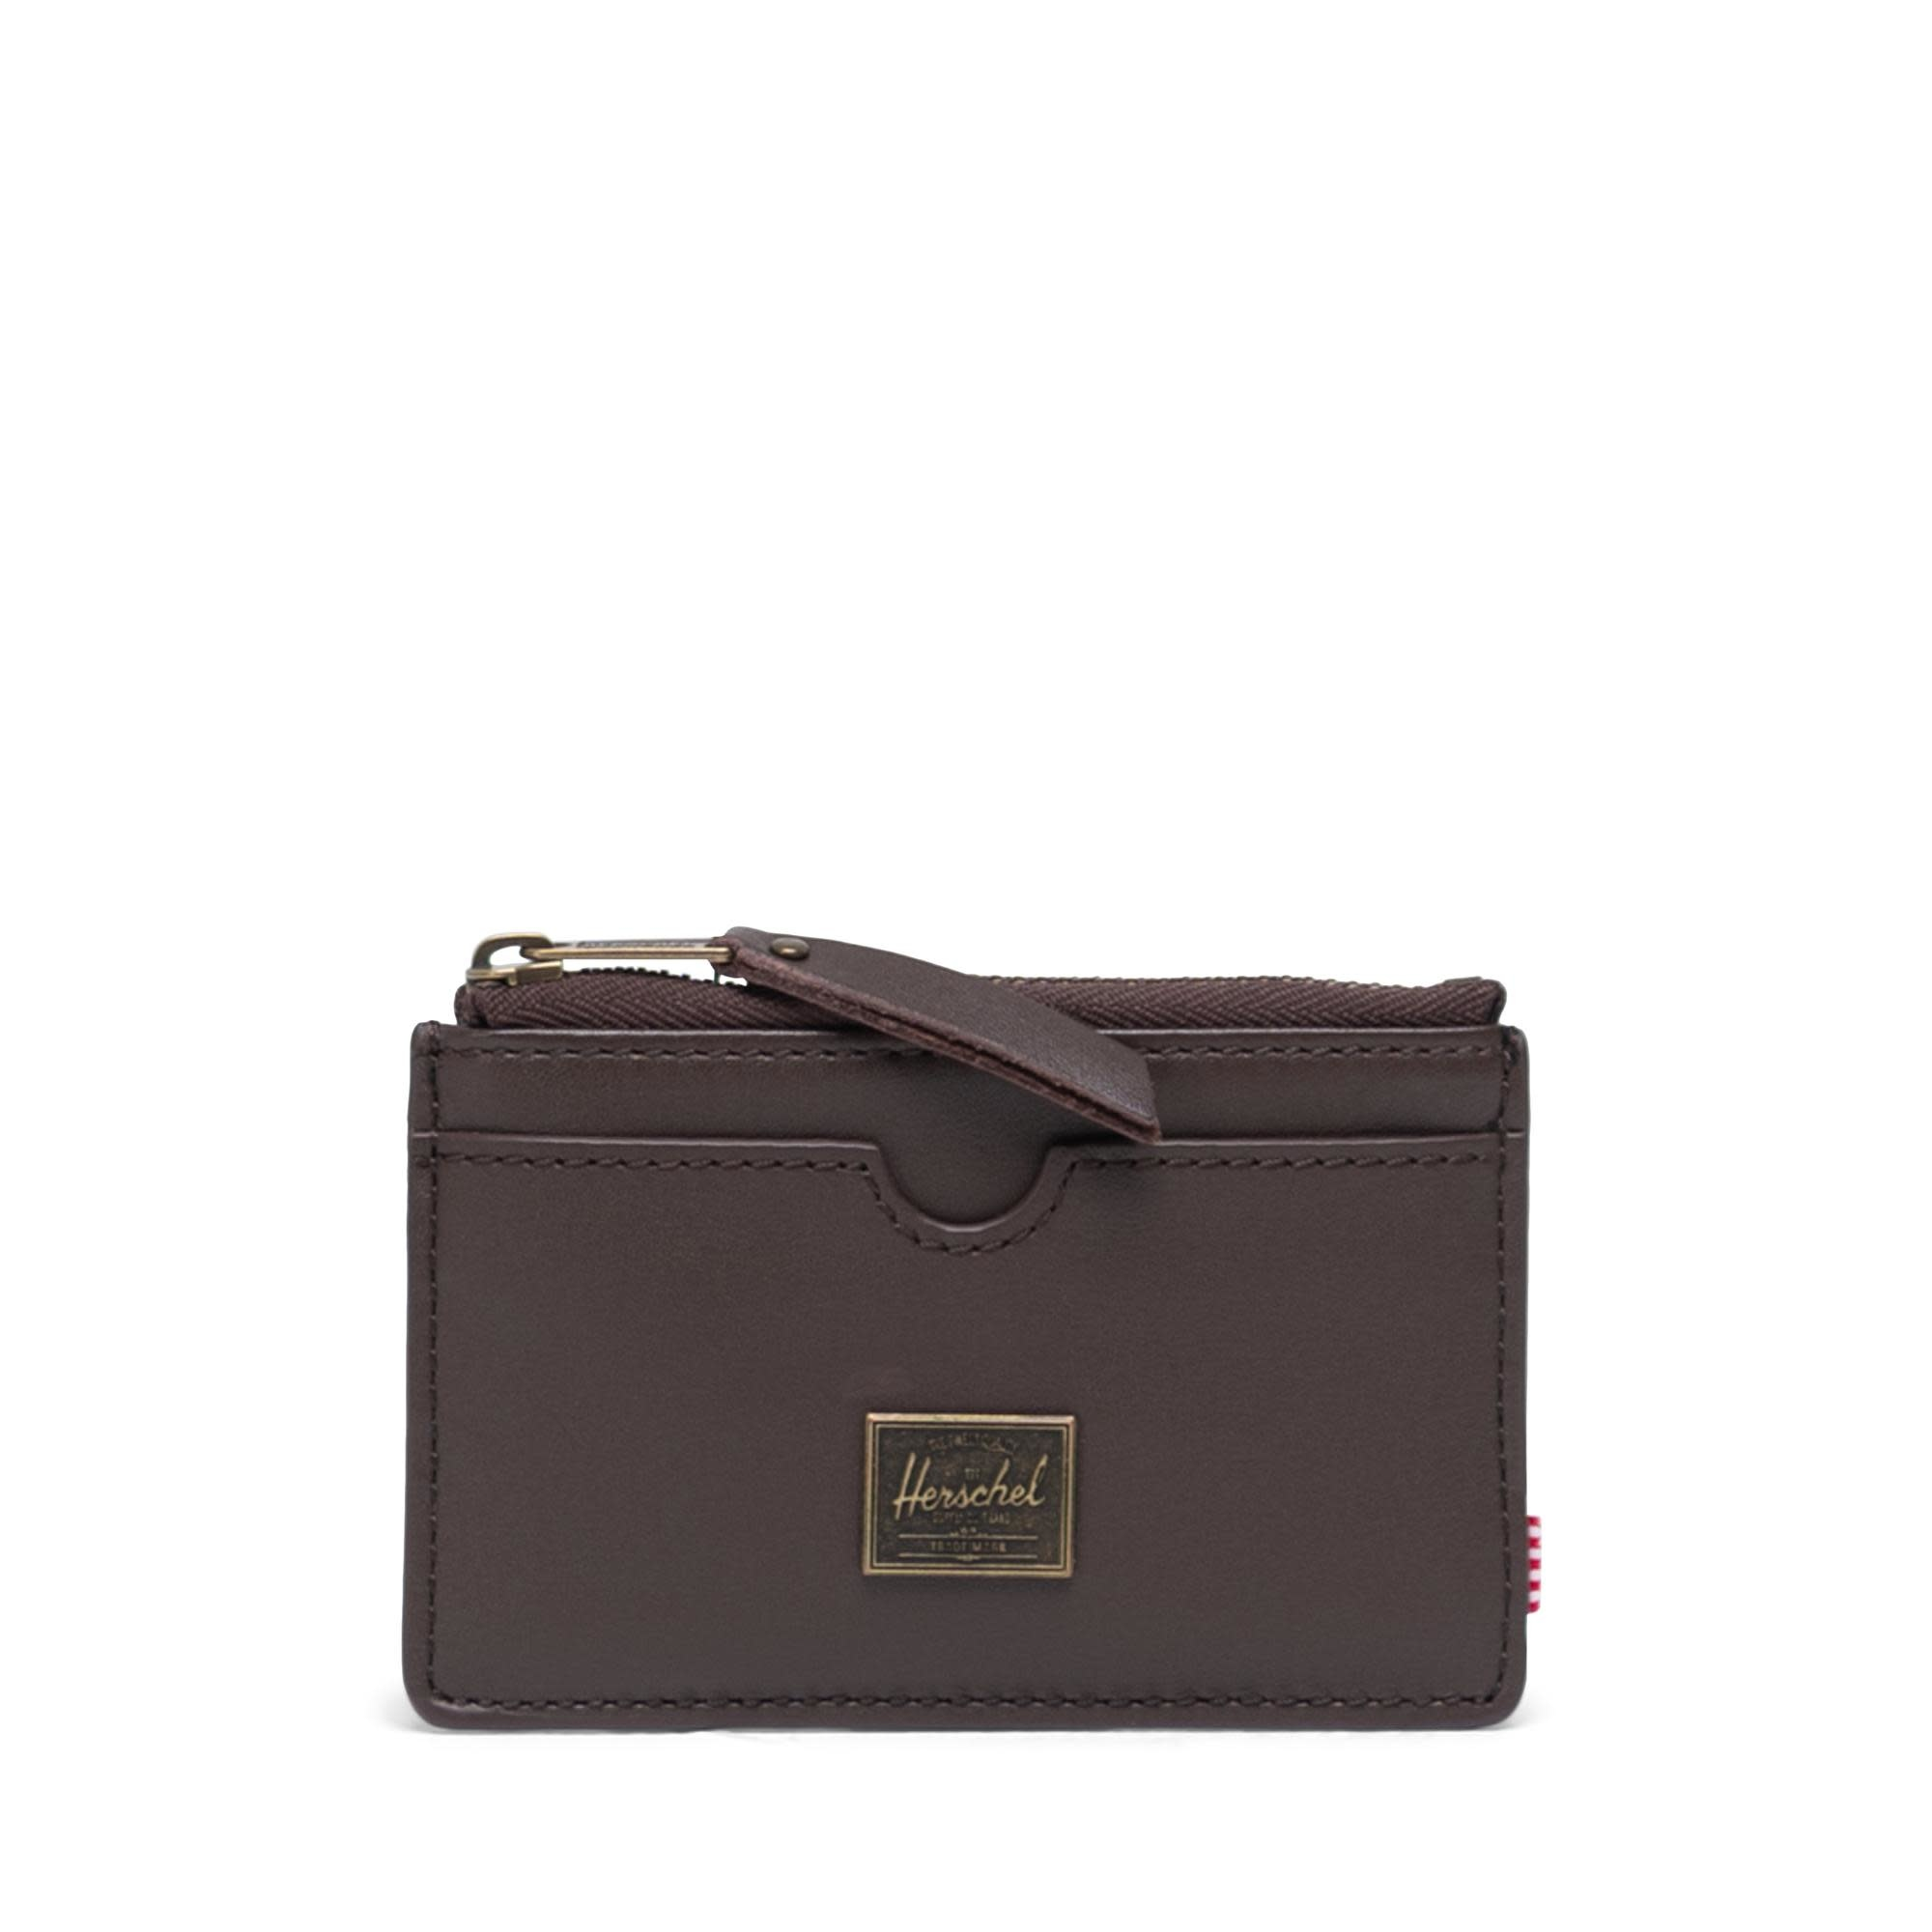 Herschel Supply Co. Herschel Oscar Leather Wallet - Brown